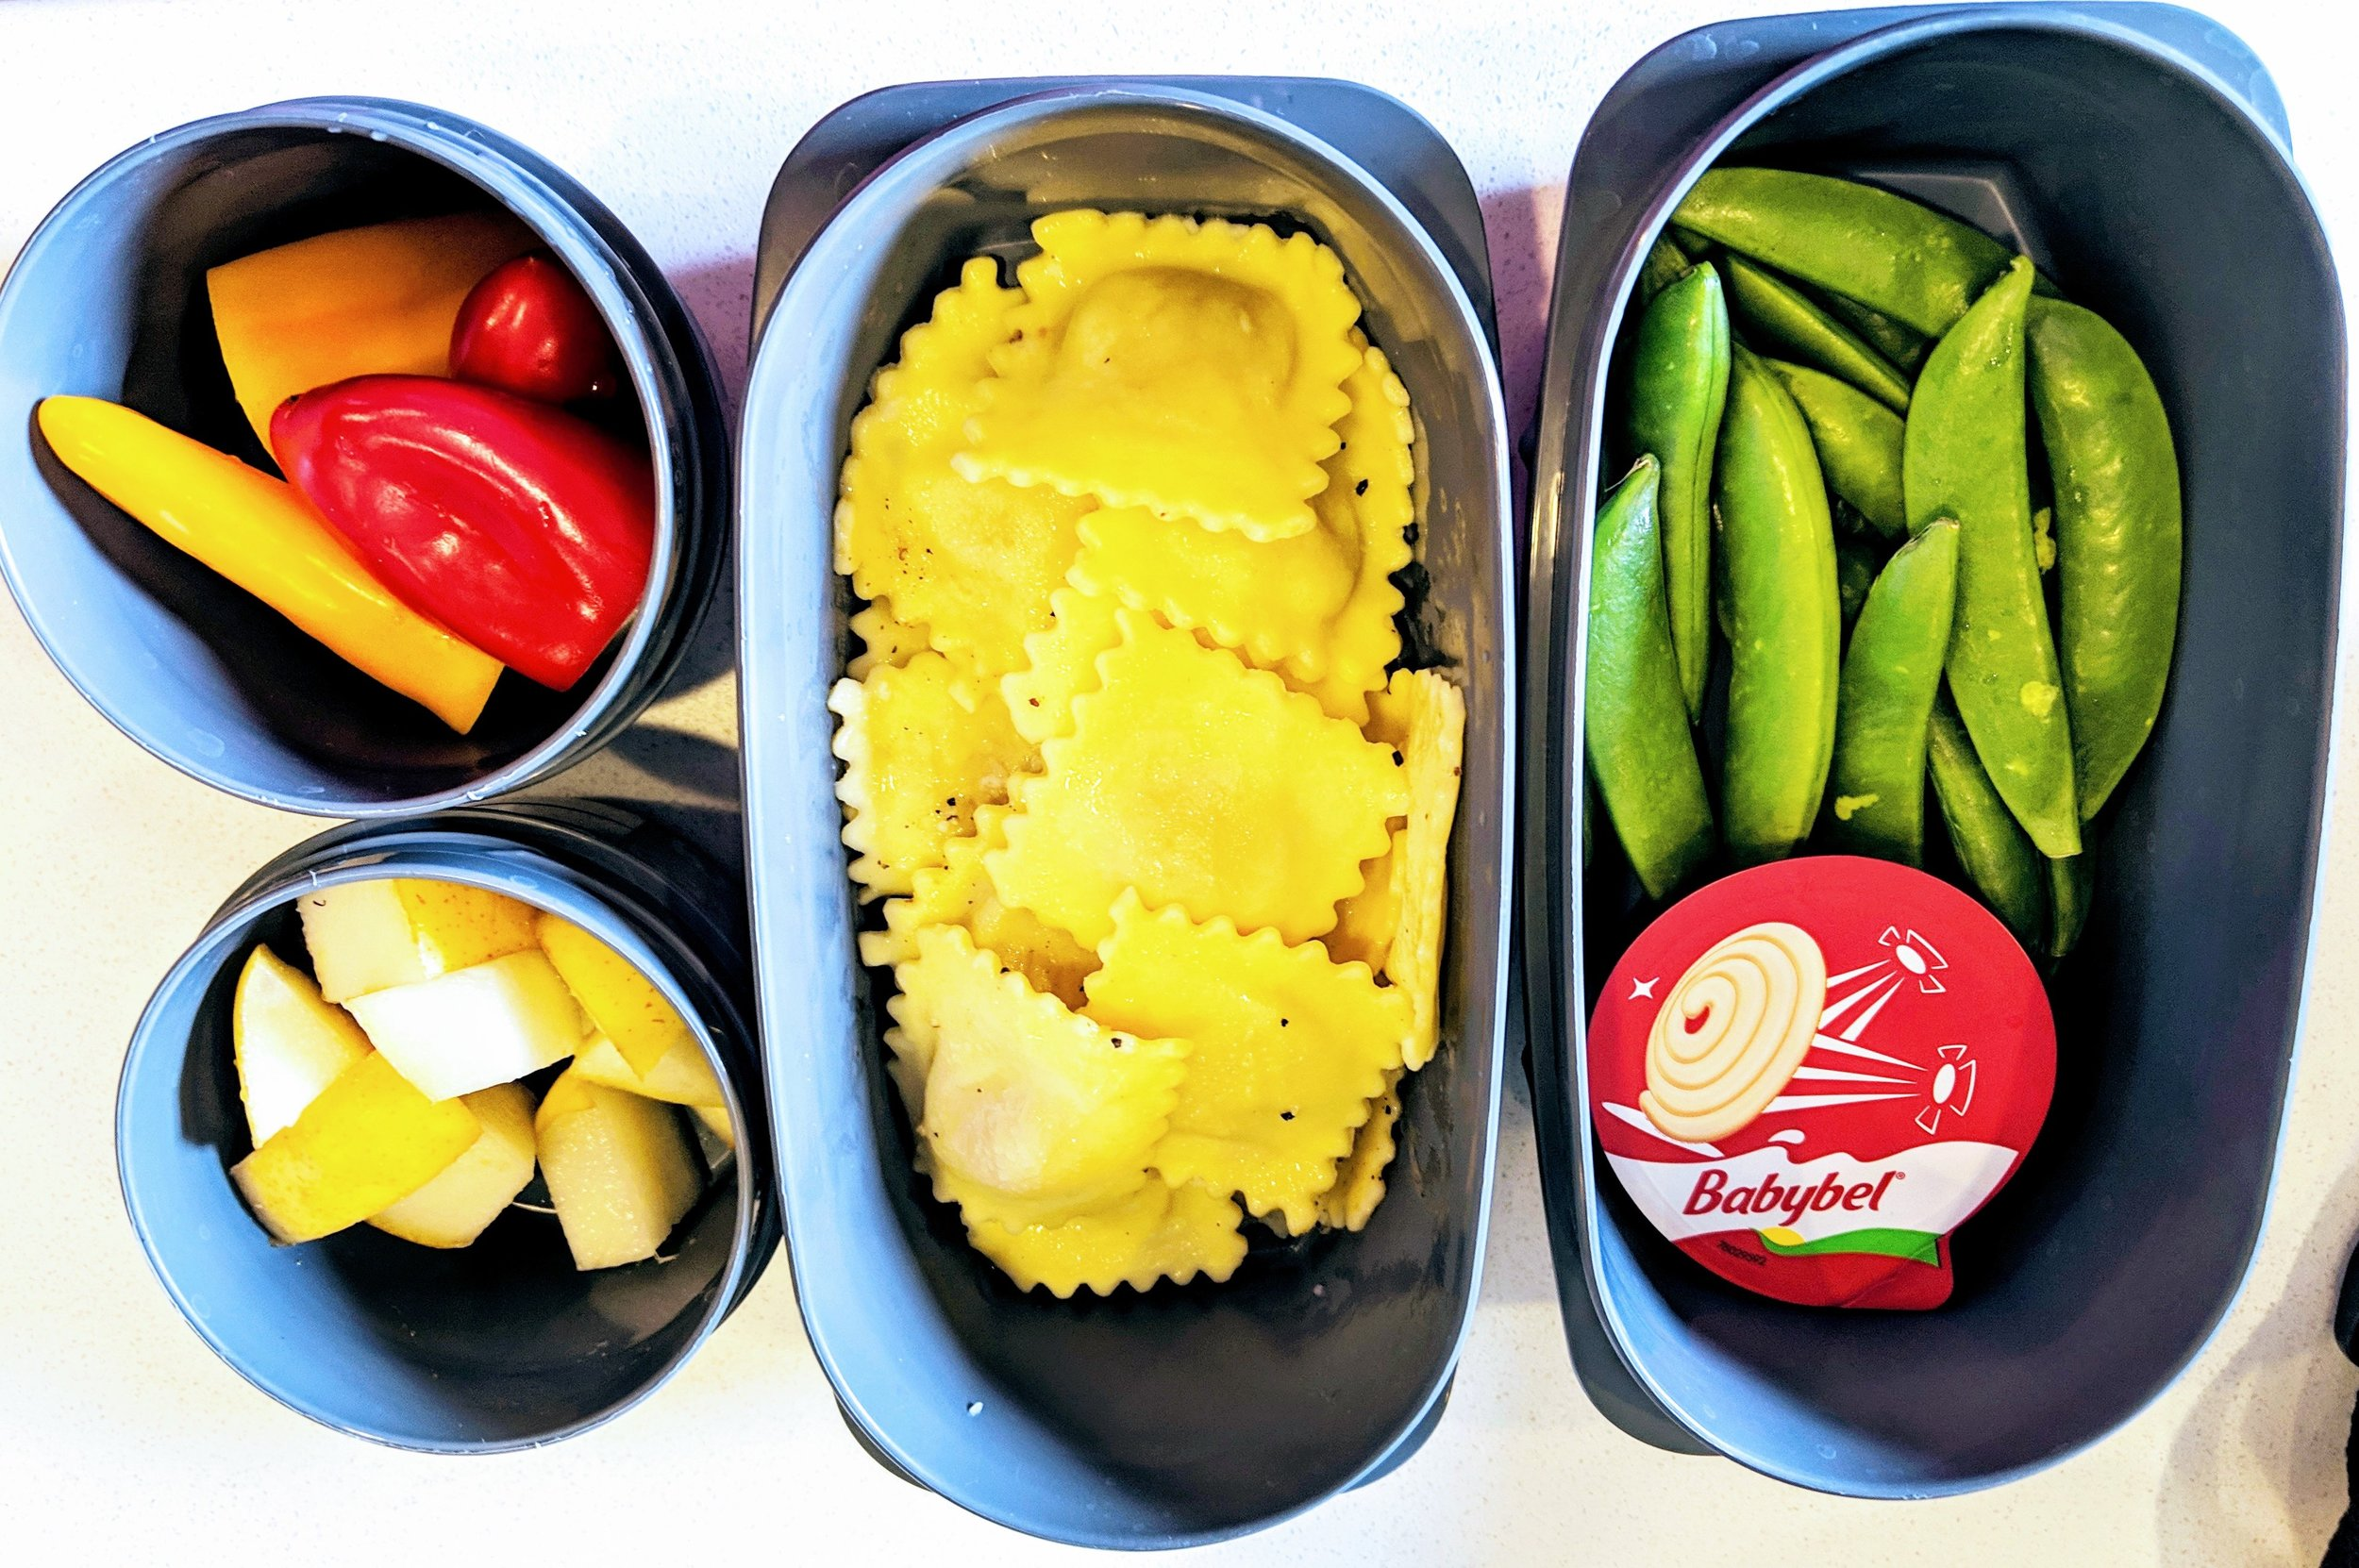 sweet mini peppers, pears, ravioli, sugar snap peas and cheese for Lunch.